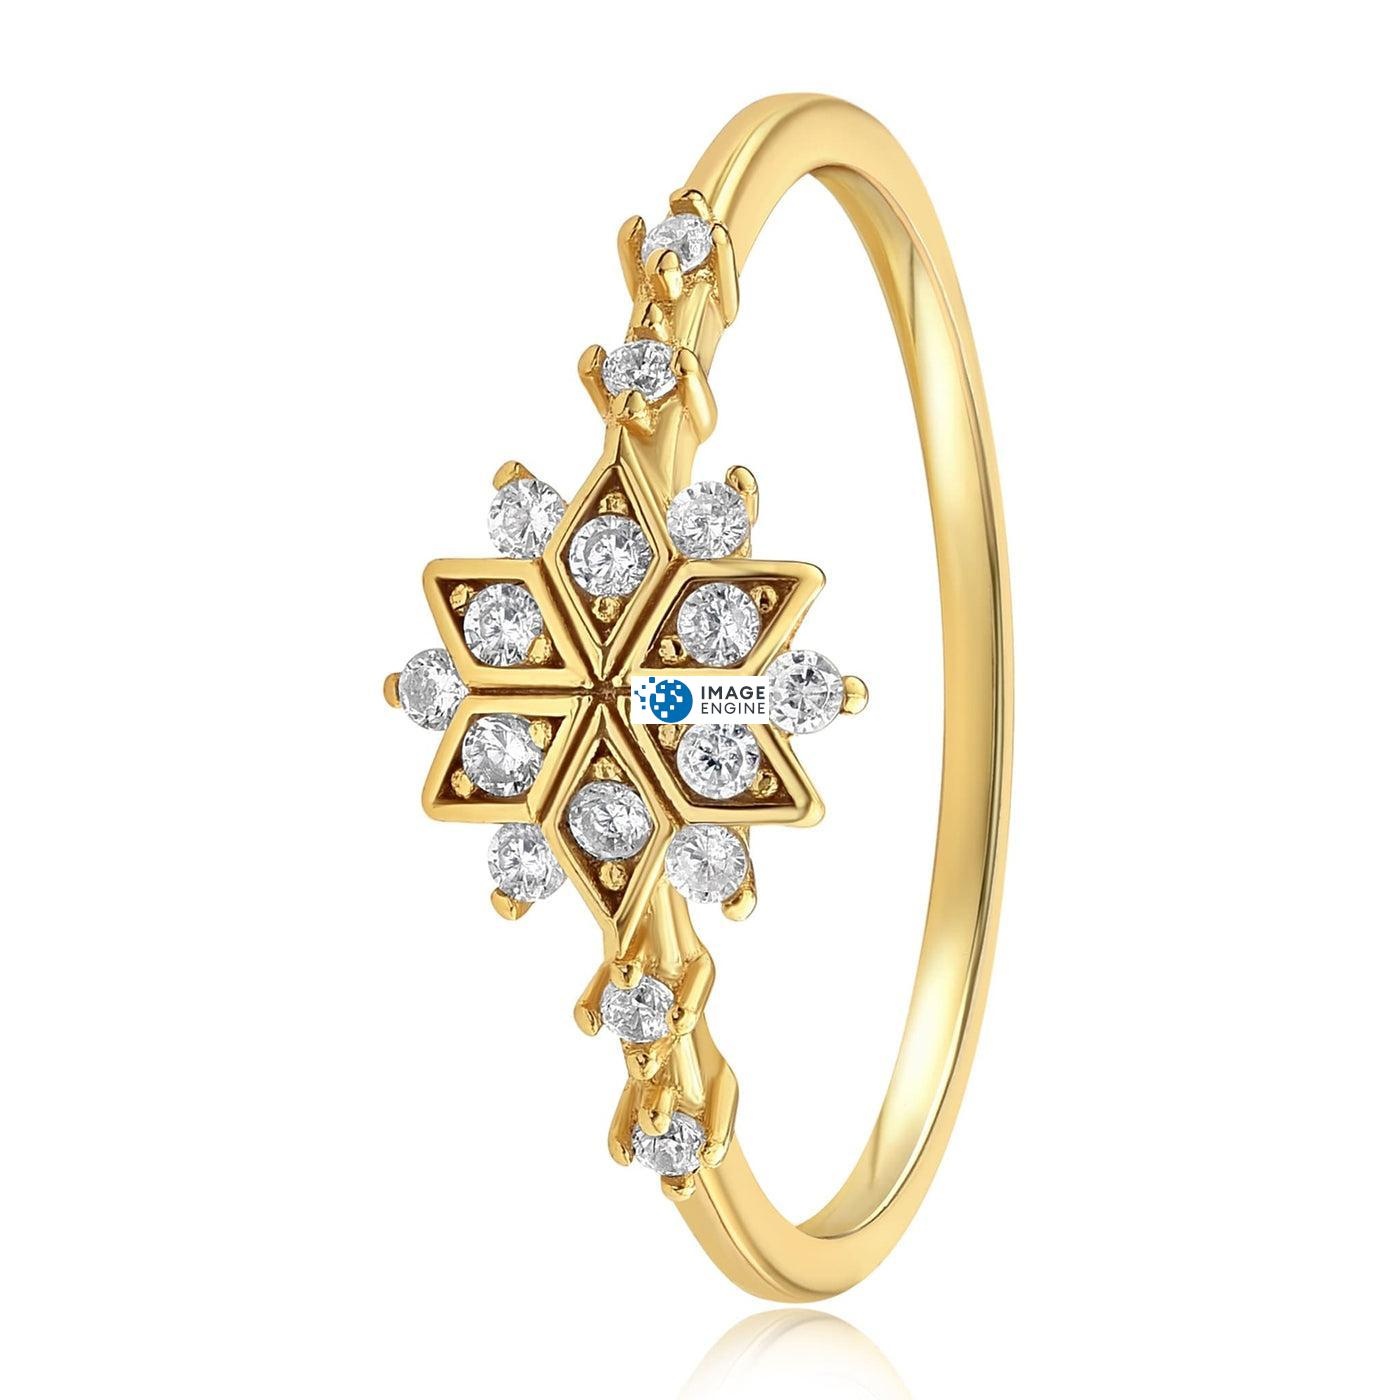 Sophia Snowflake Ring - Side View - 18K Yellow Gold Vermeil